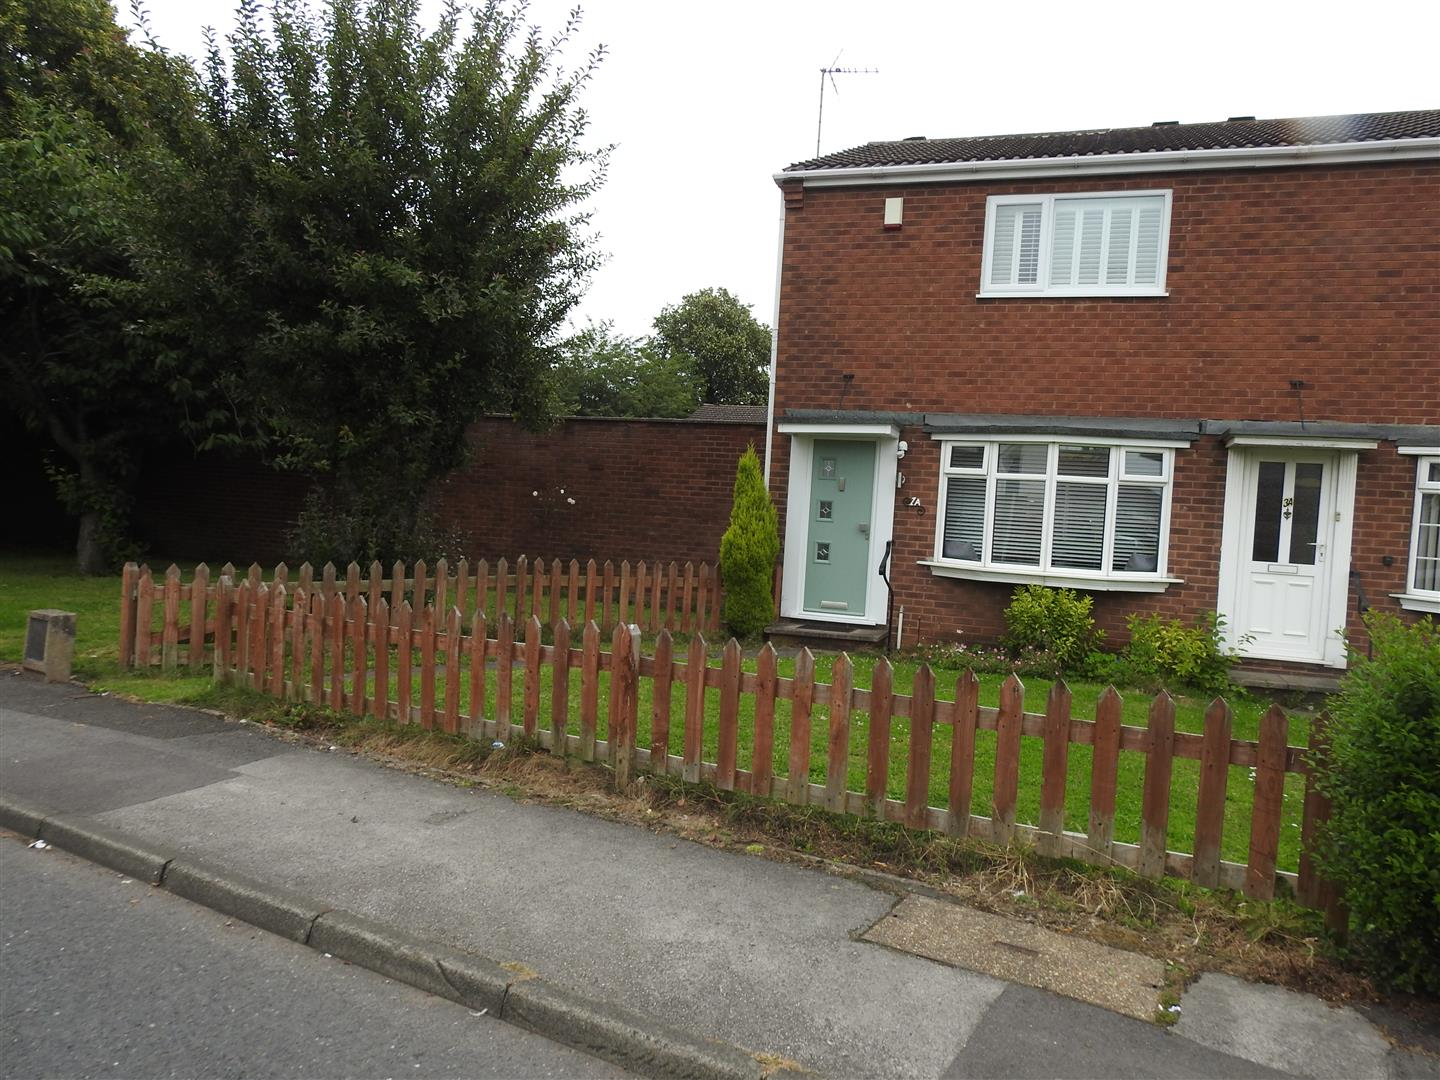 2 Bedrooms Semi Detached House for sale in Shortwood Avenue, Hucknall, Nottingham